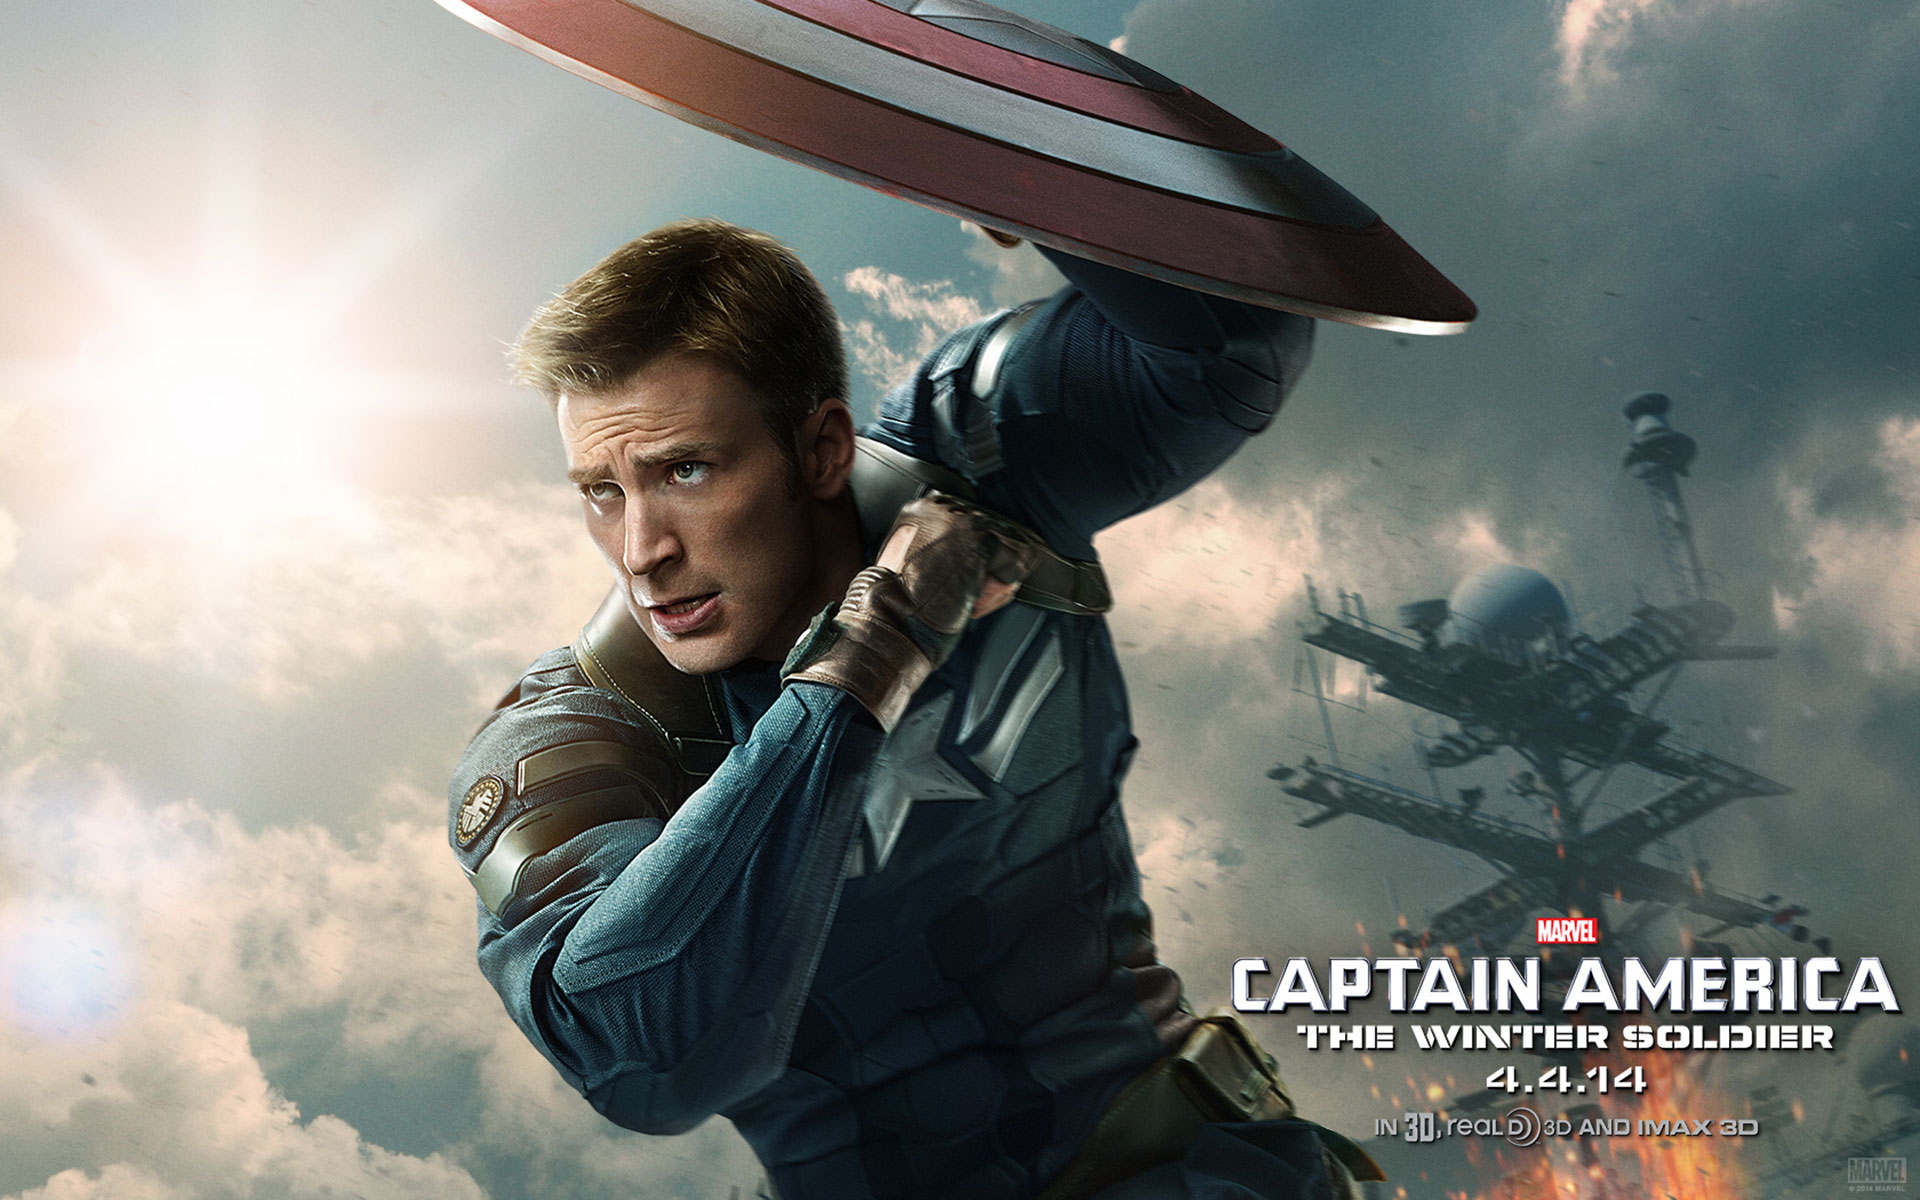 CAPTAIN AMERICA THE WINTER SOLDIER Wallpapers and Desktop Backgrounds 1920x1200